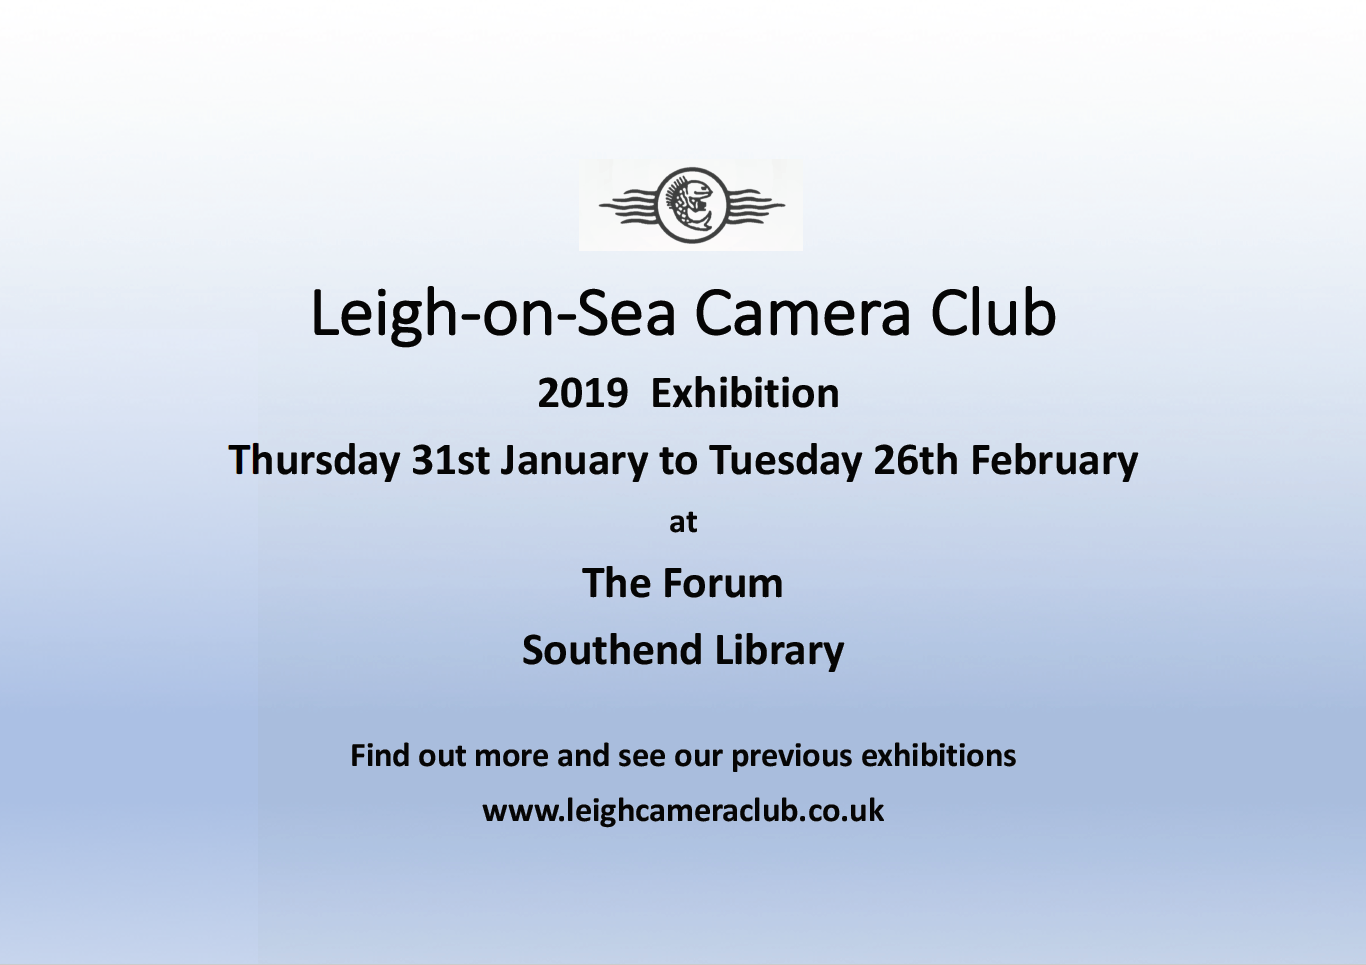 Annual Exhibition: By Leigh-on-Sea Camera Club